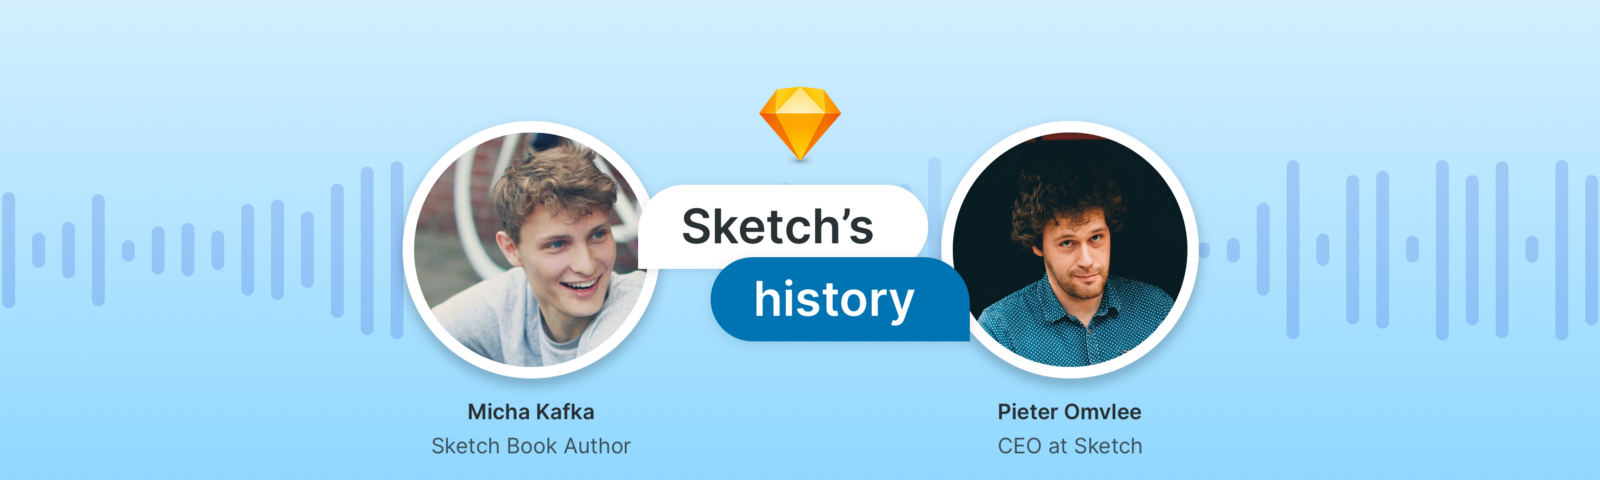 Micha Kafka, Sketch Book Author and Pieter Omvlee, CEO at Sketch talk about the tools history.